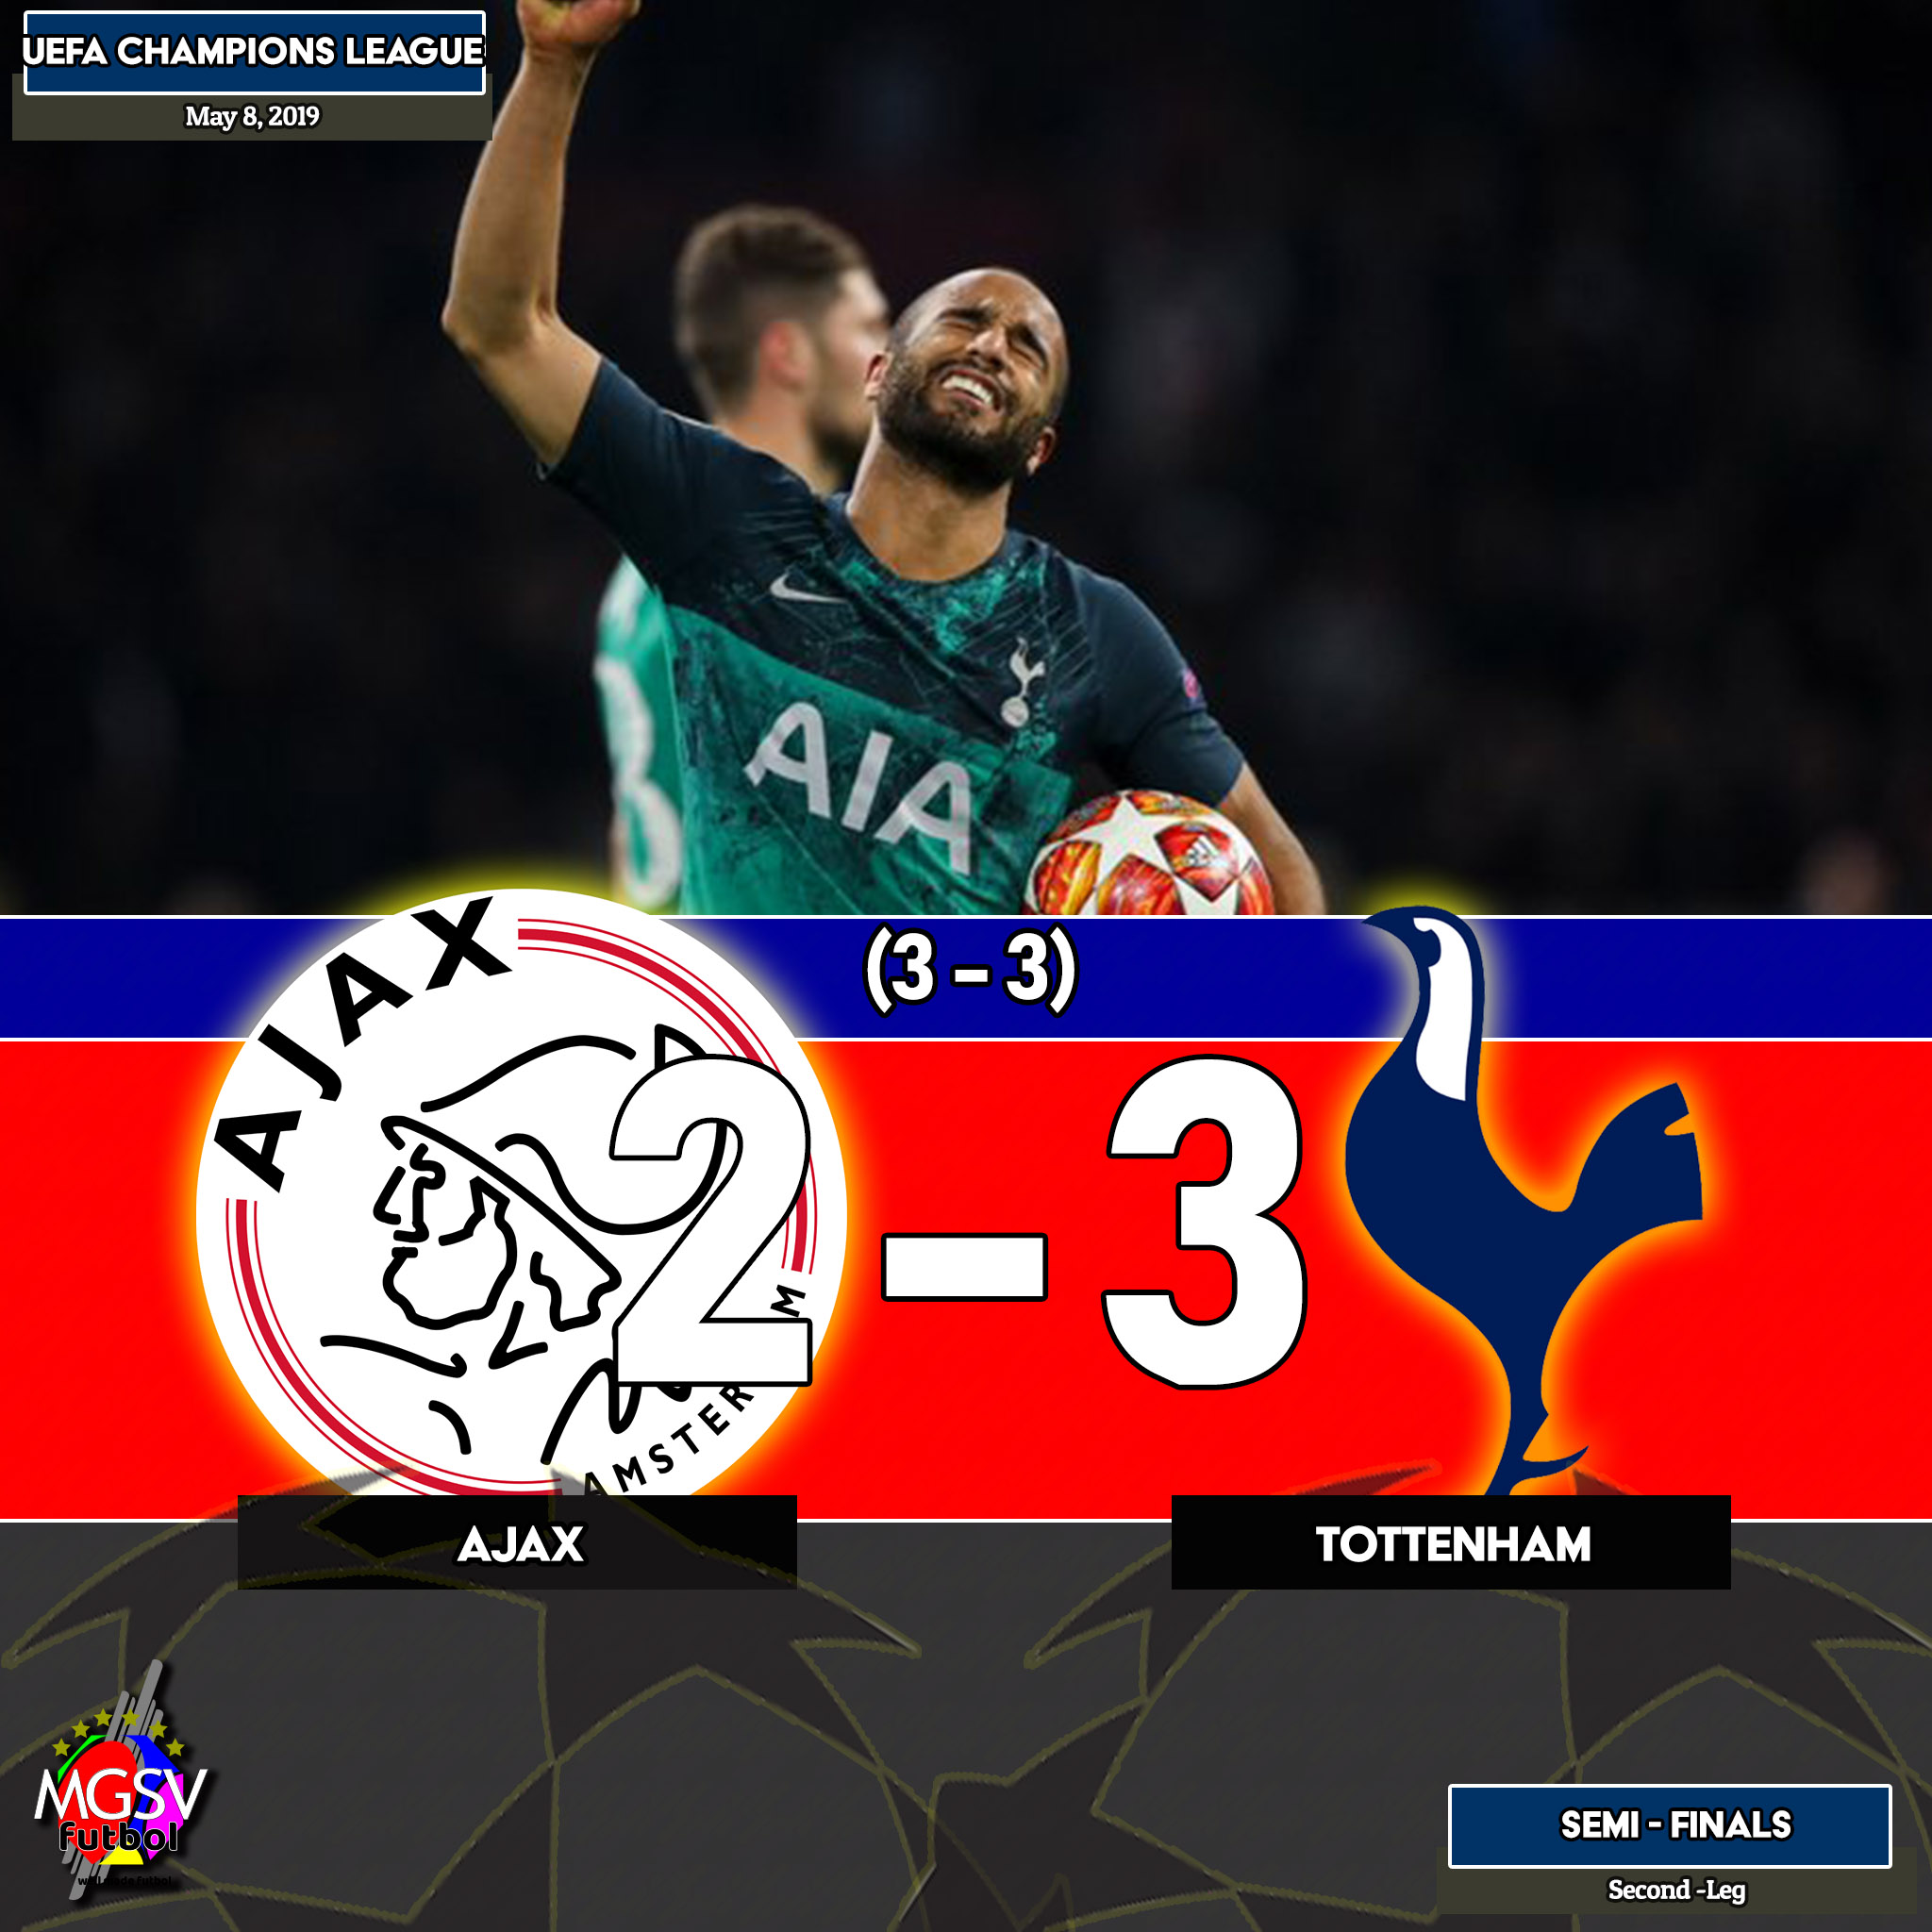 Lucas Moura Spurs Goals: An All-English Final For The 2018/19 Champions League